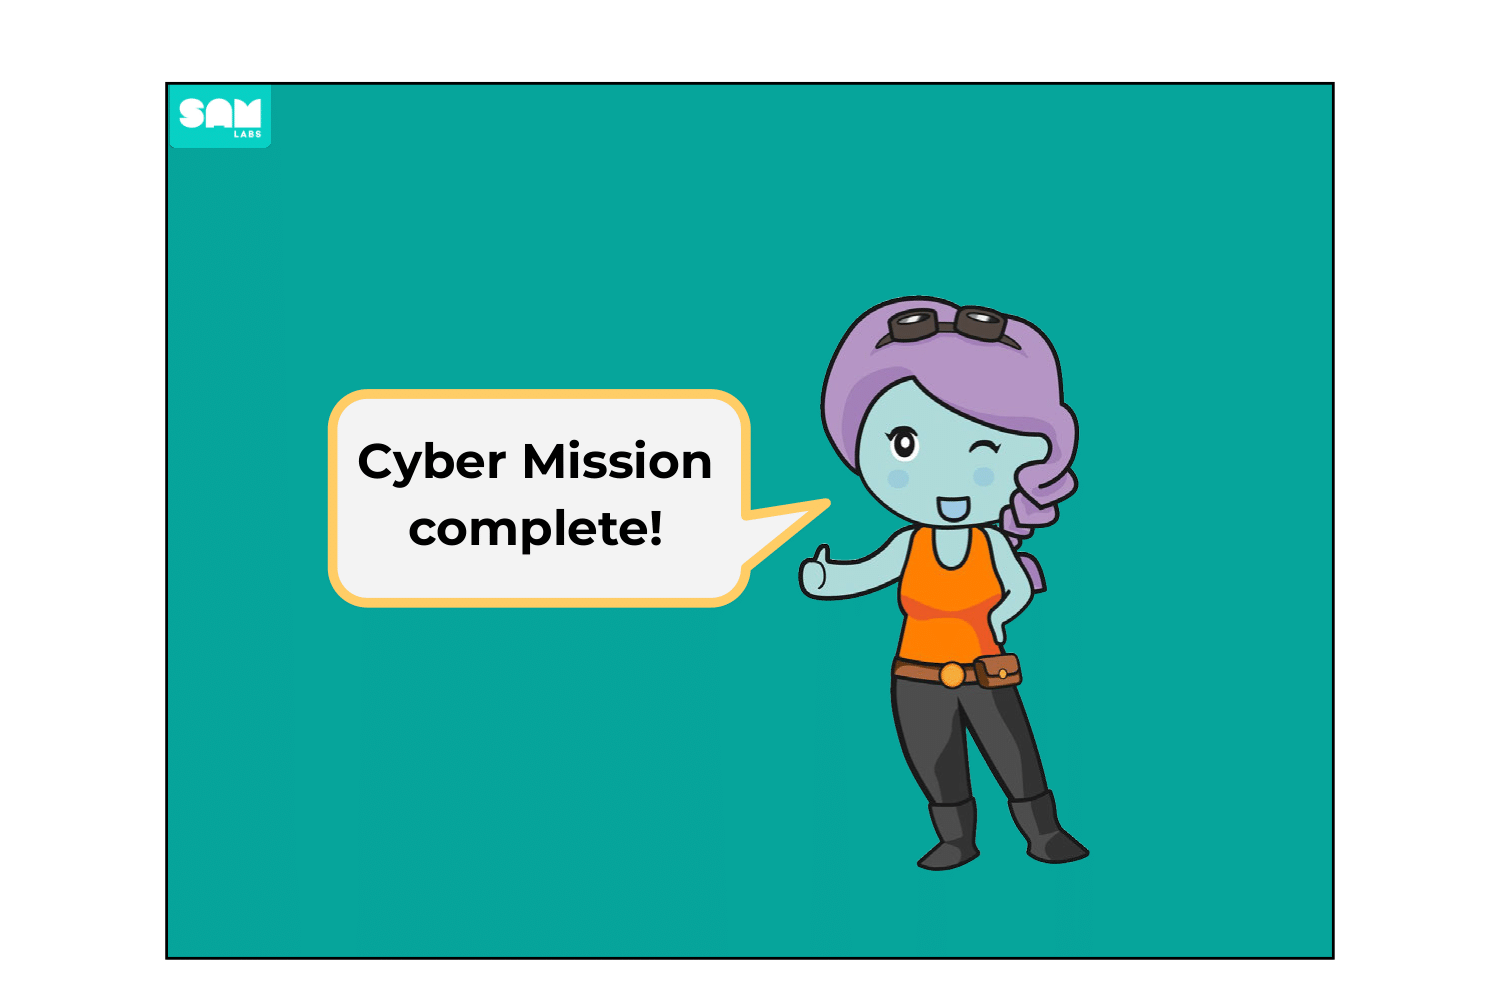 LEARN_TO_CODE_Grade_4_Lesson_1_Into_Cyberspace_Lesson_Slides-17.png